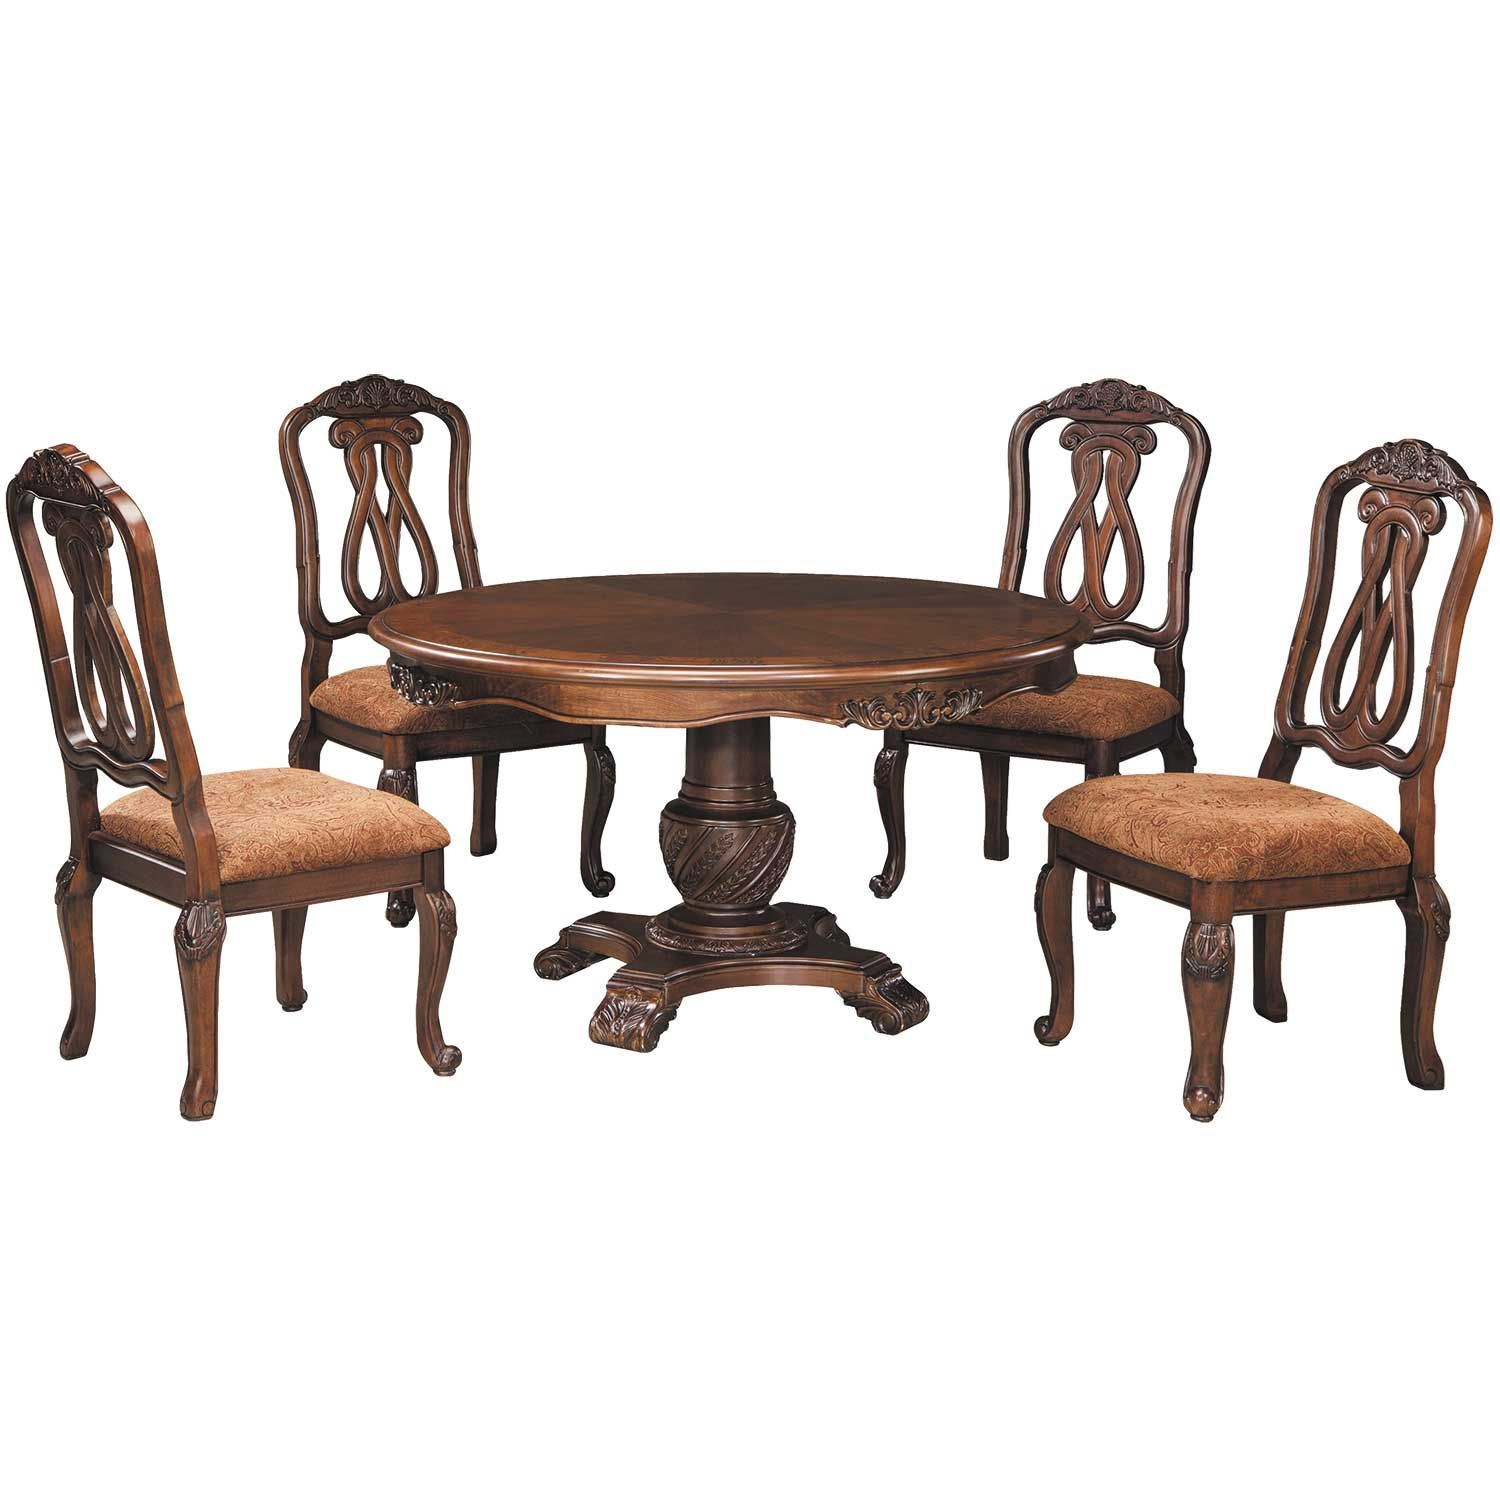 Picture Of North Shore 5 Piece Round Table Set